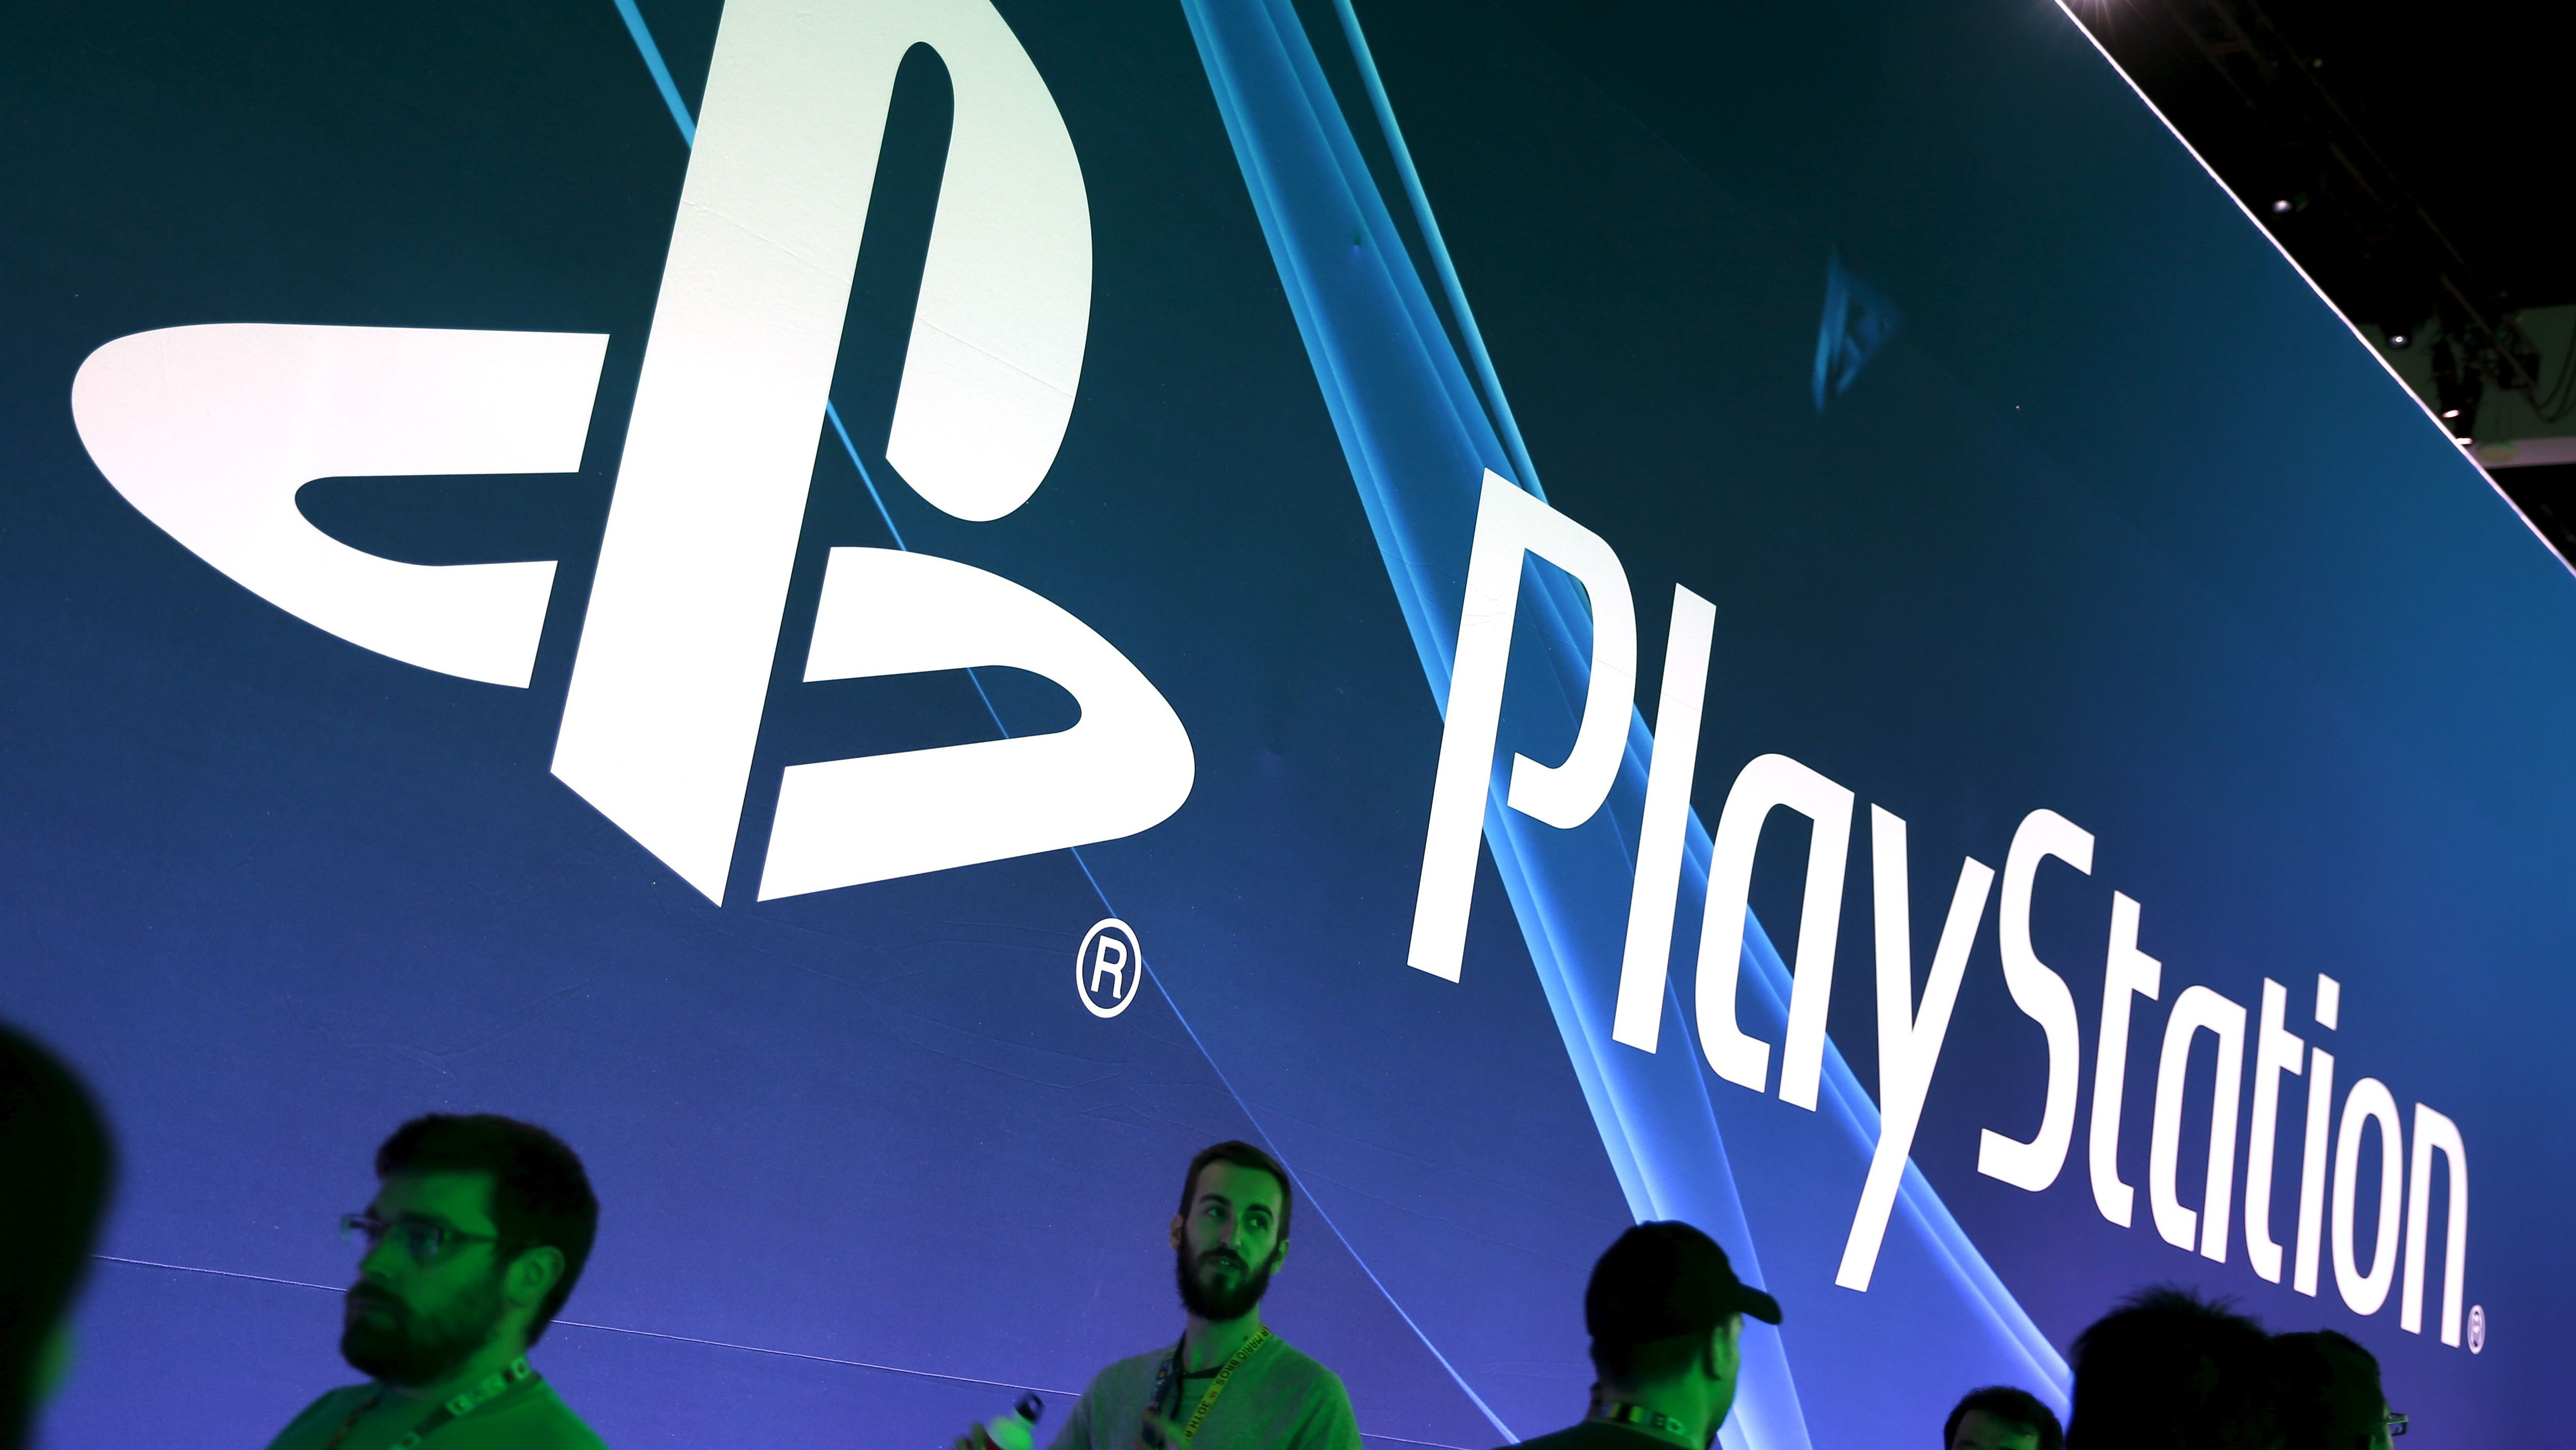 A Sony PlayStation video game logo is seen at the Electronic Entertainment Expo.